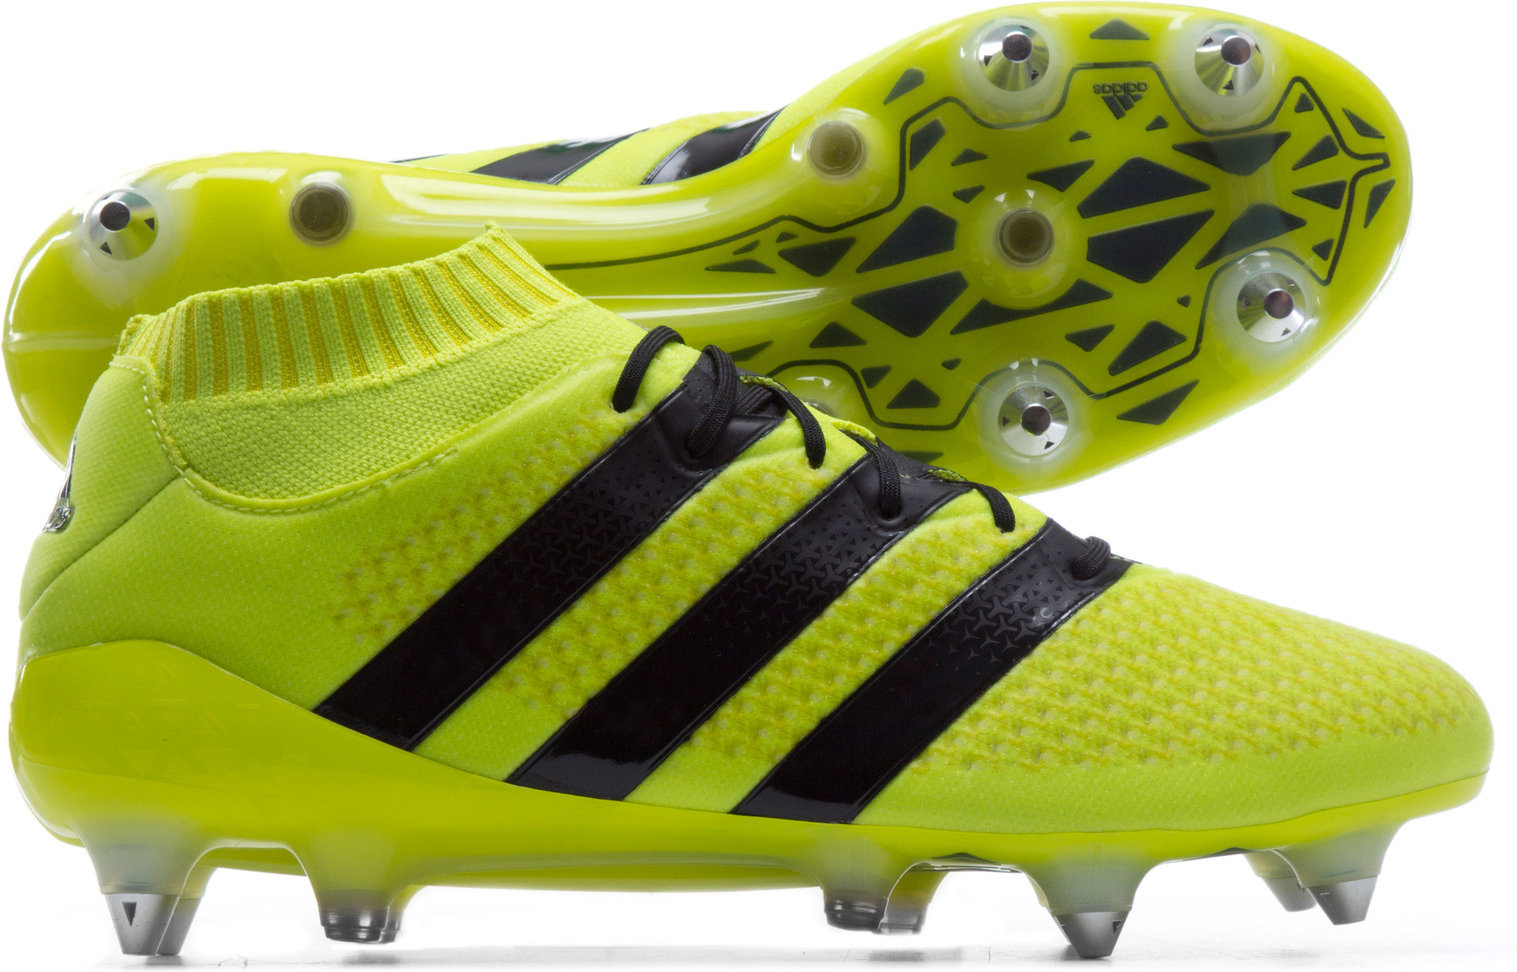 fdc1ad952c79 adidas Mens Ace 16.1 Primeknit SG Football Boots Studs Sports Shoes Yellow